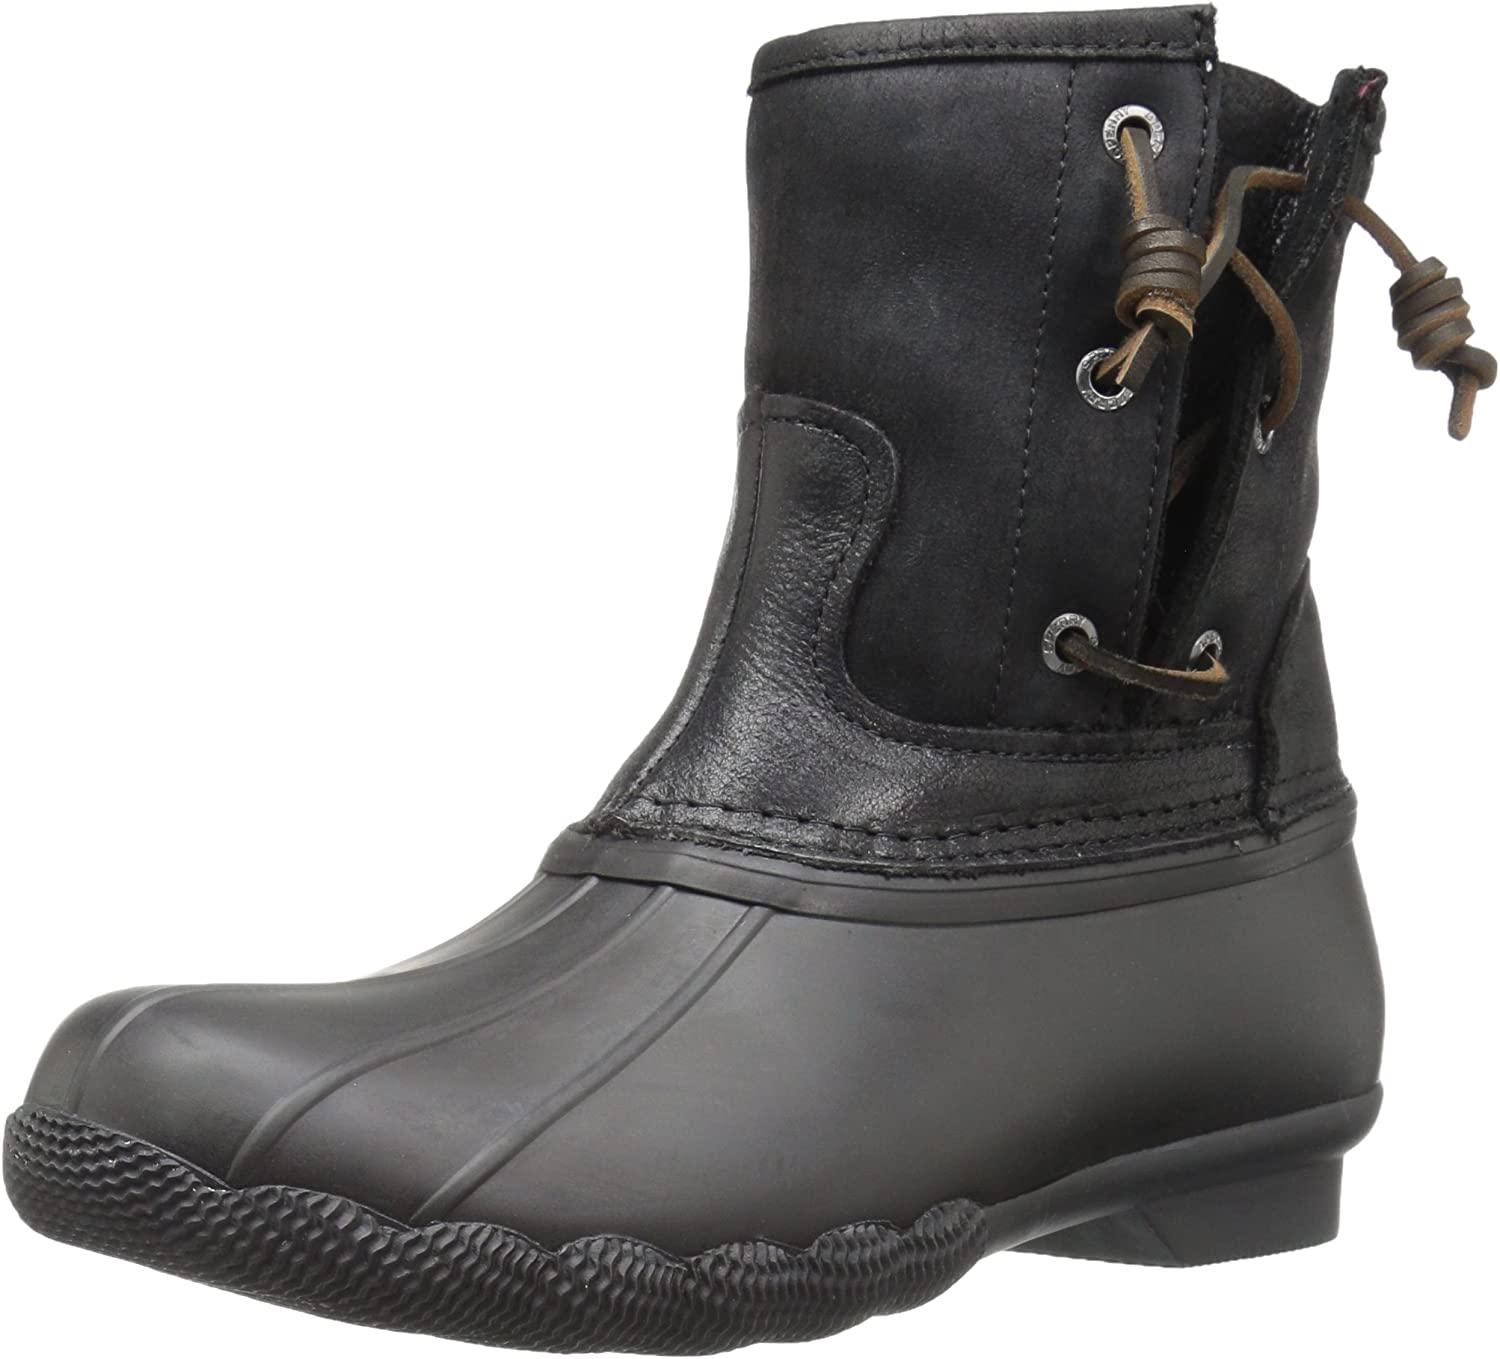 Sperry Women's Saltwater Pearl Leather Rain Boots Grey